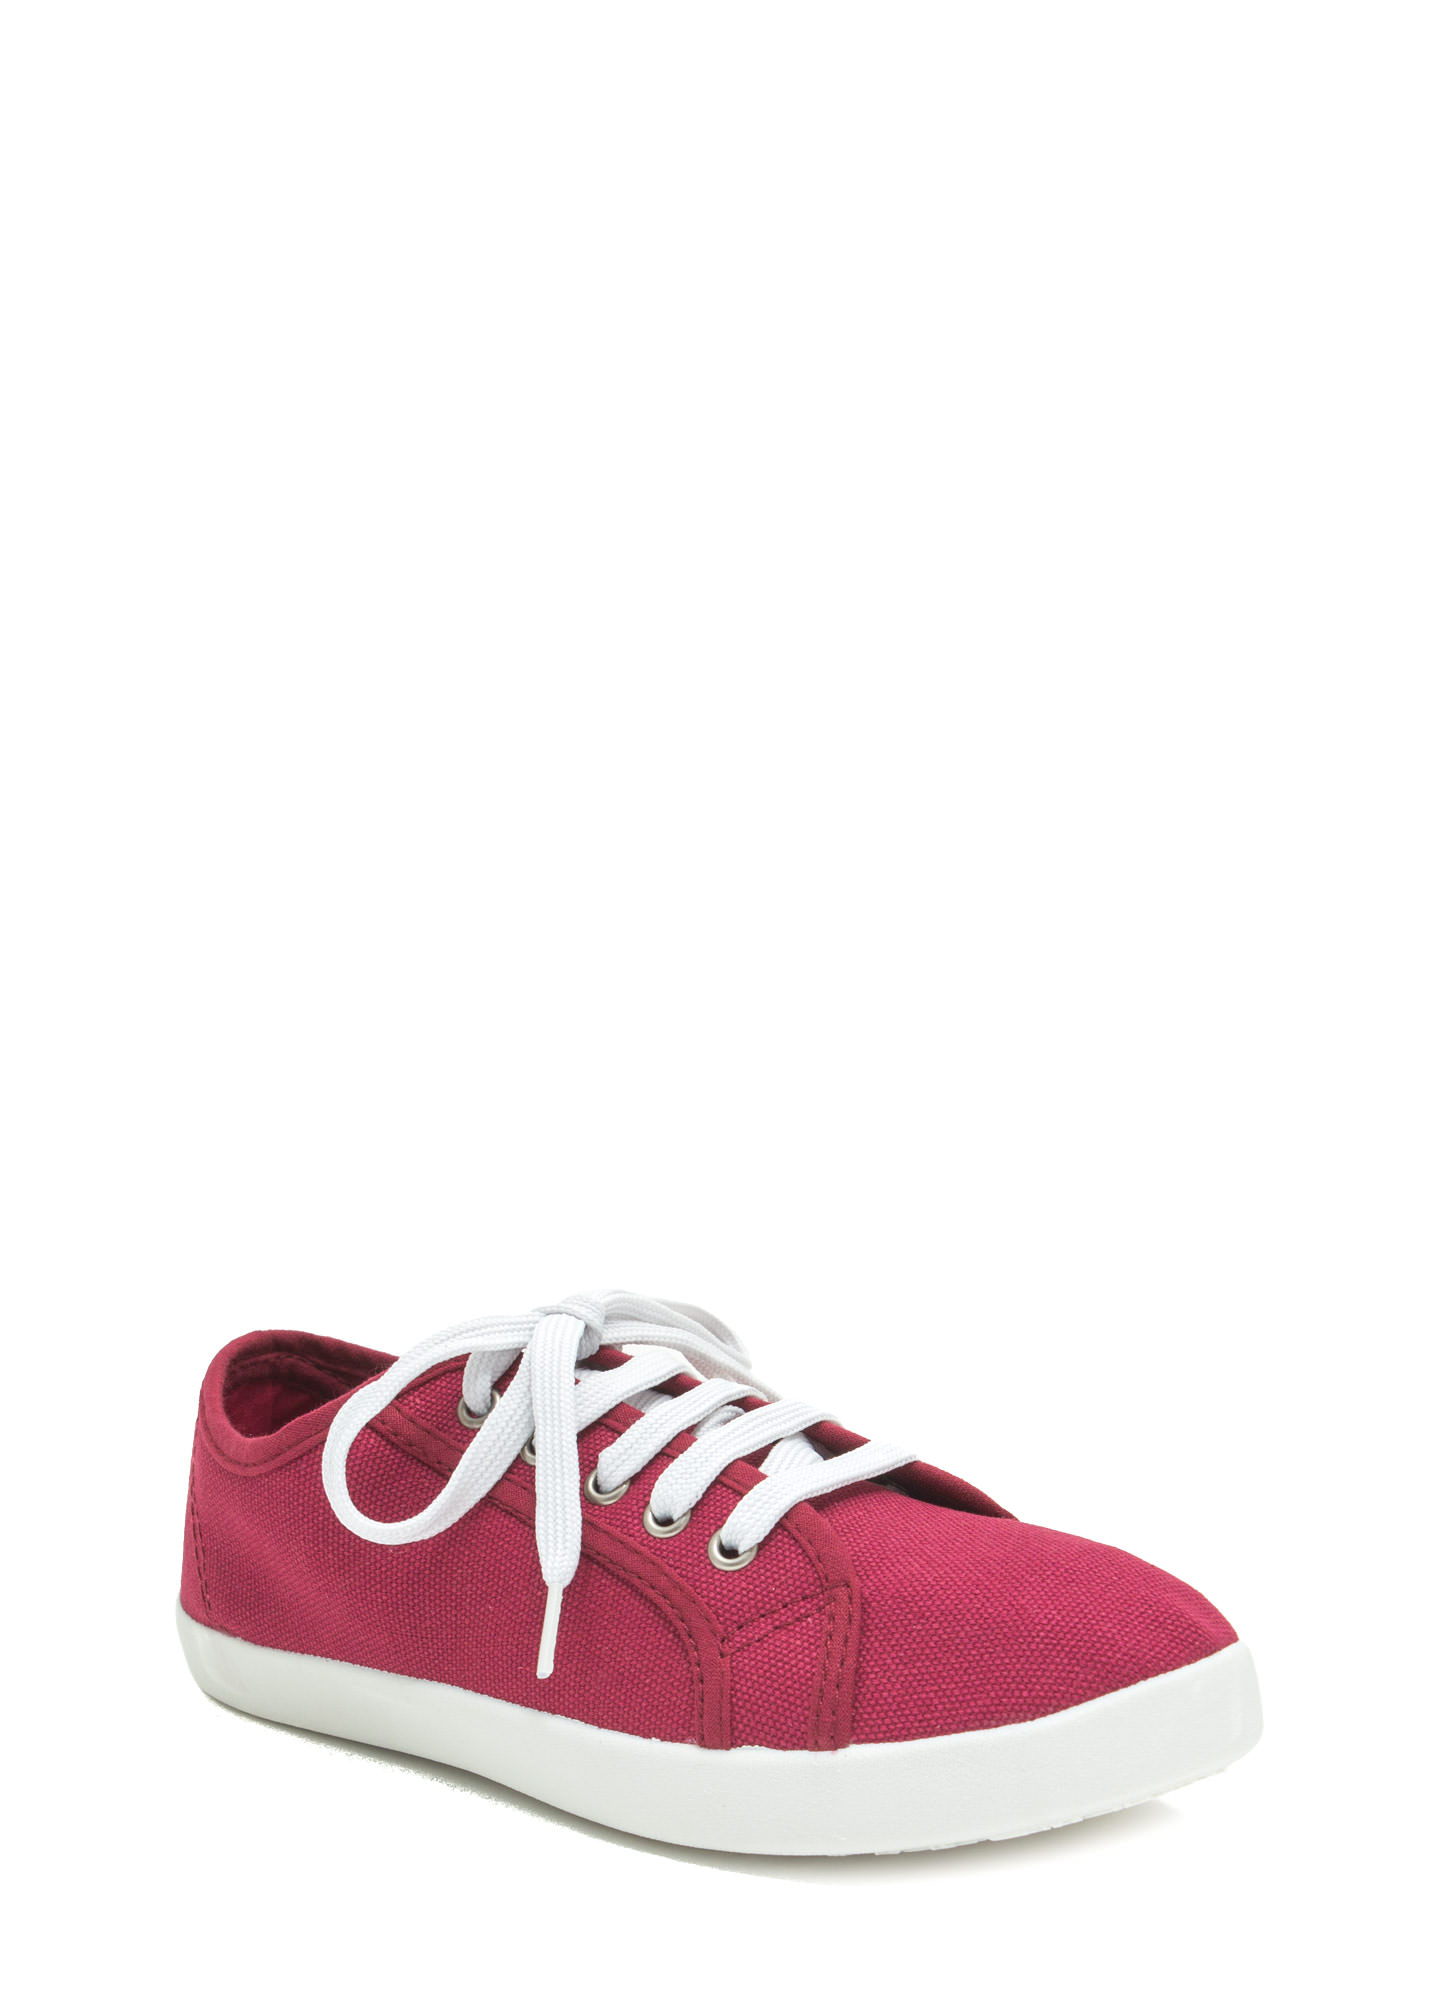 Off-Duty Classic Canvas Sneakers BERRY